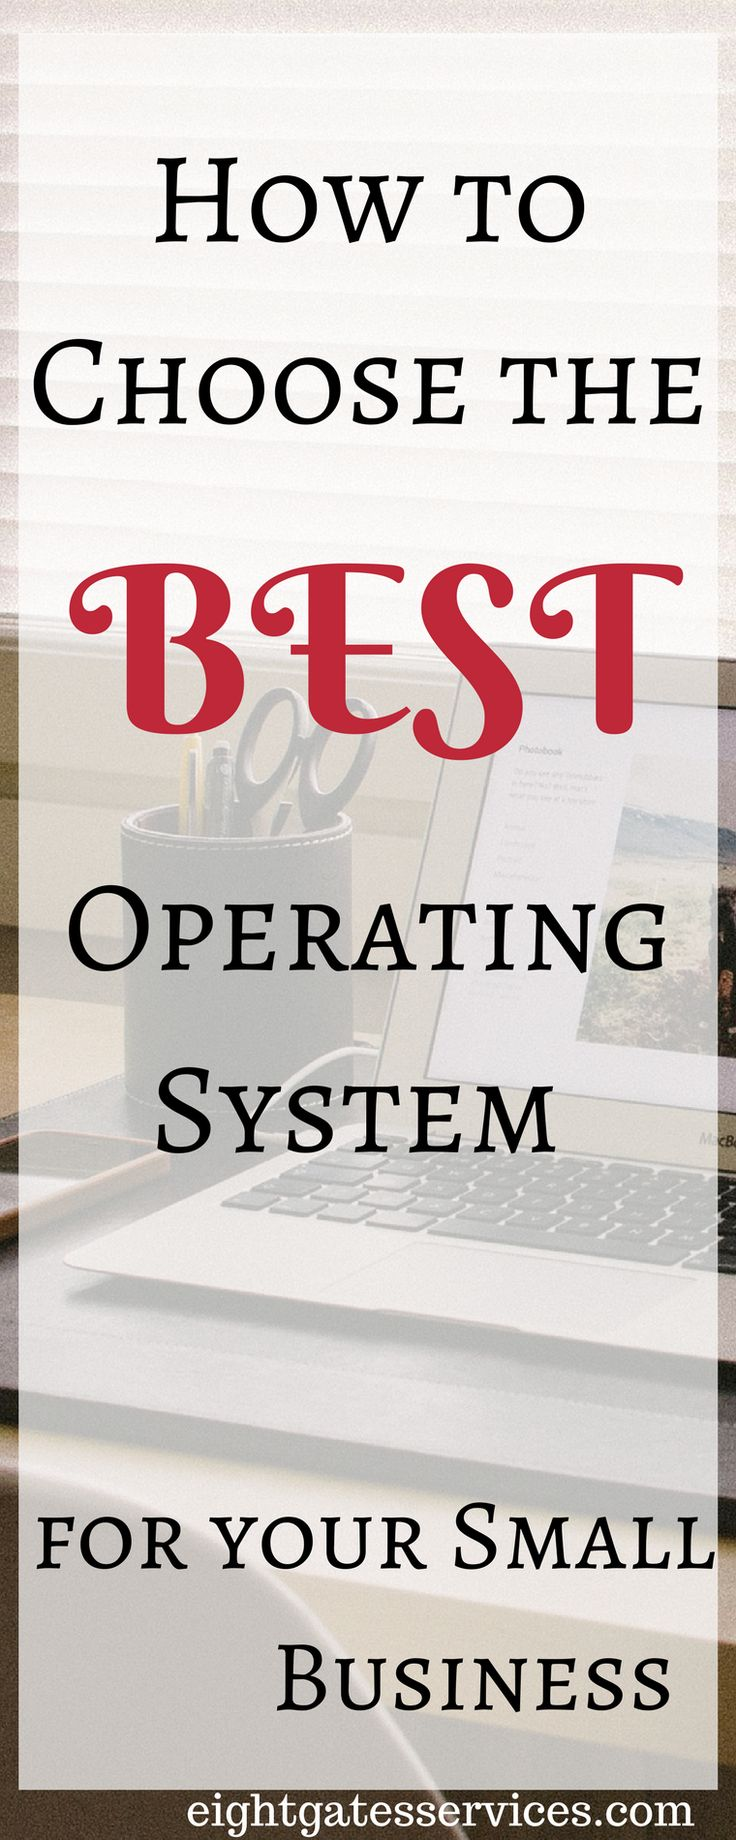 How to choose the best operating system for your small business. While Microsoft Windows has the largest share of the market it could be worth your while to explore the pros and cons of all 3 major computer operating systems to see whether Mac OS X or Linux might be a better fit for your purposes!